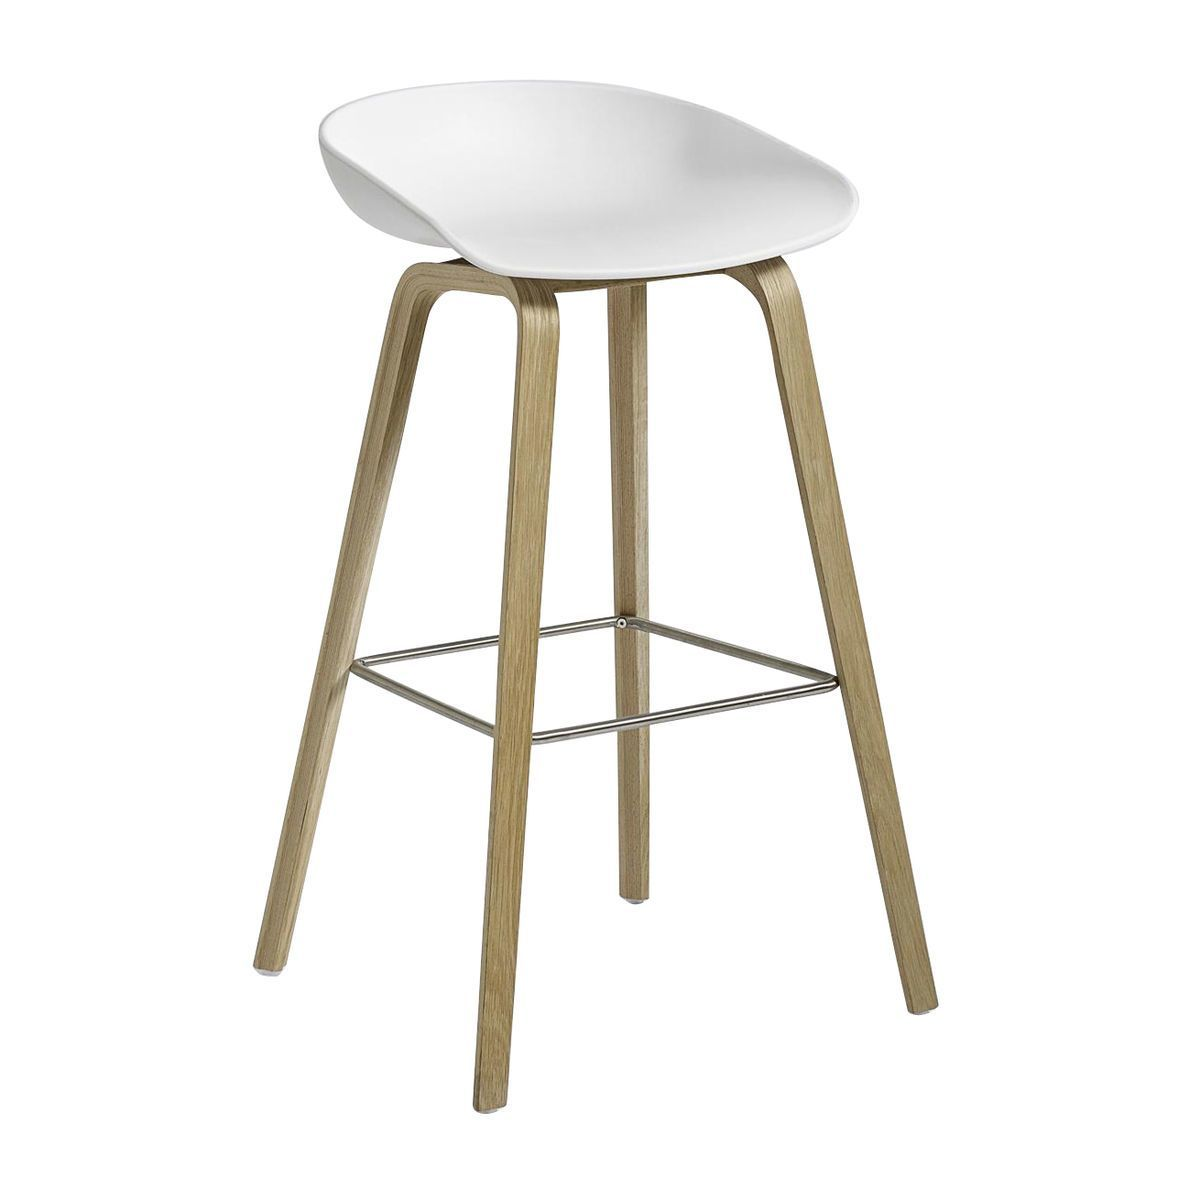 About a stool aas32 barhocker 75cm hay for Gute barhocker